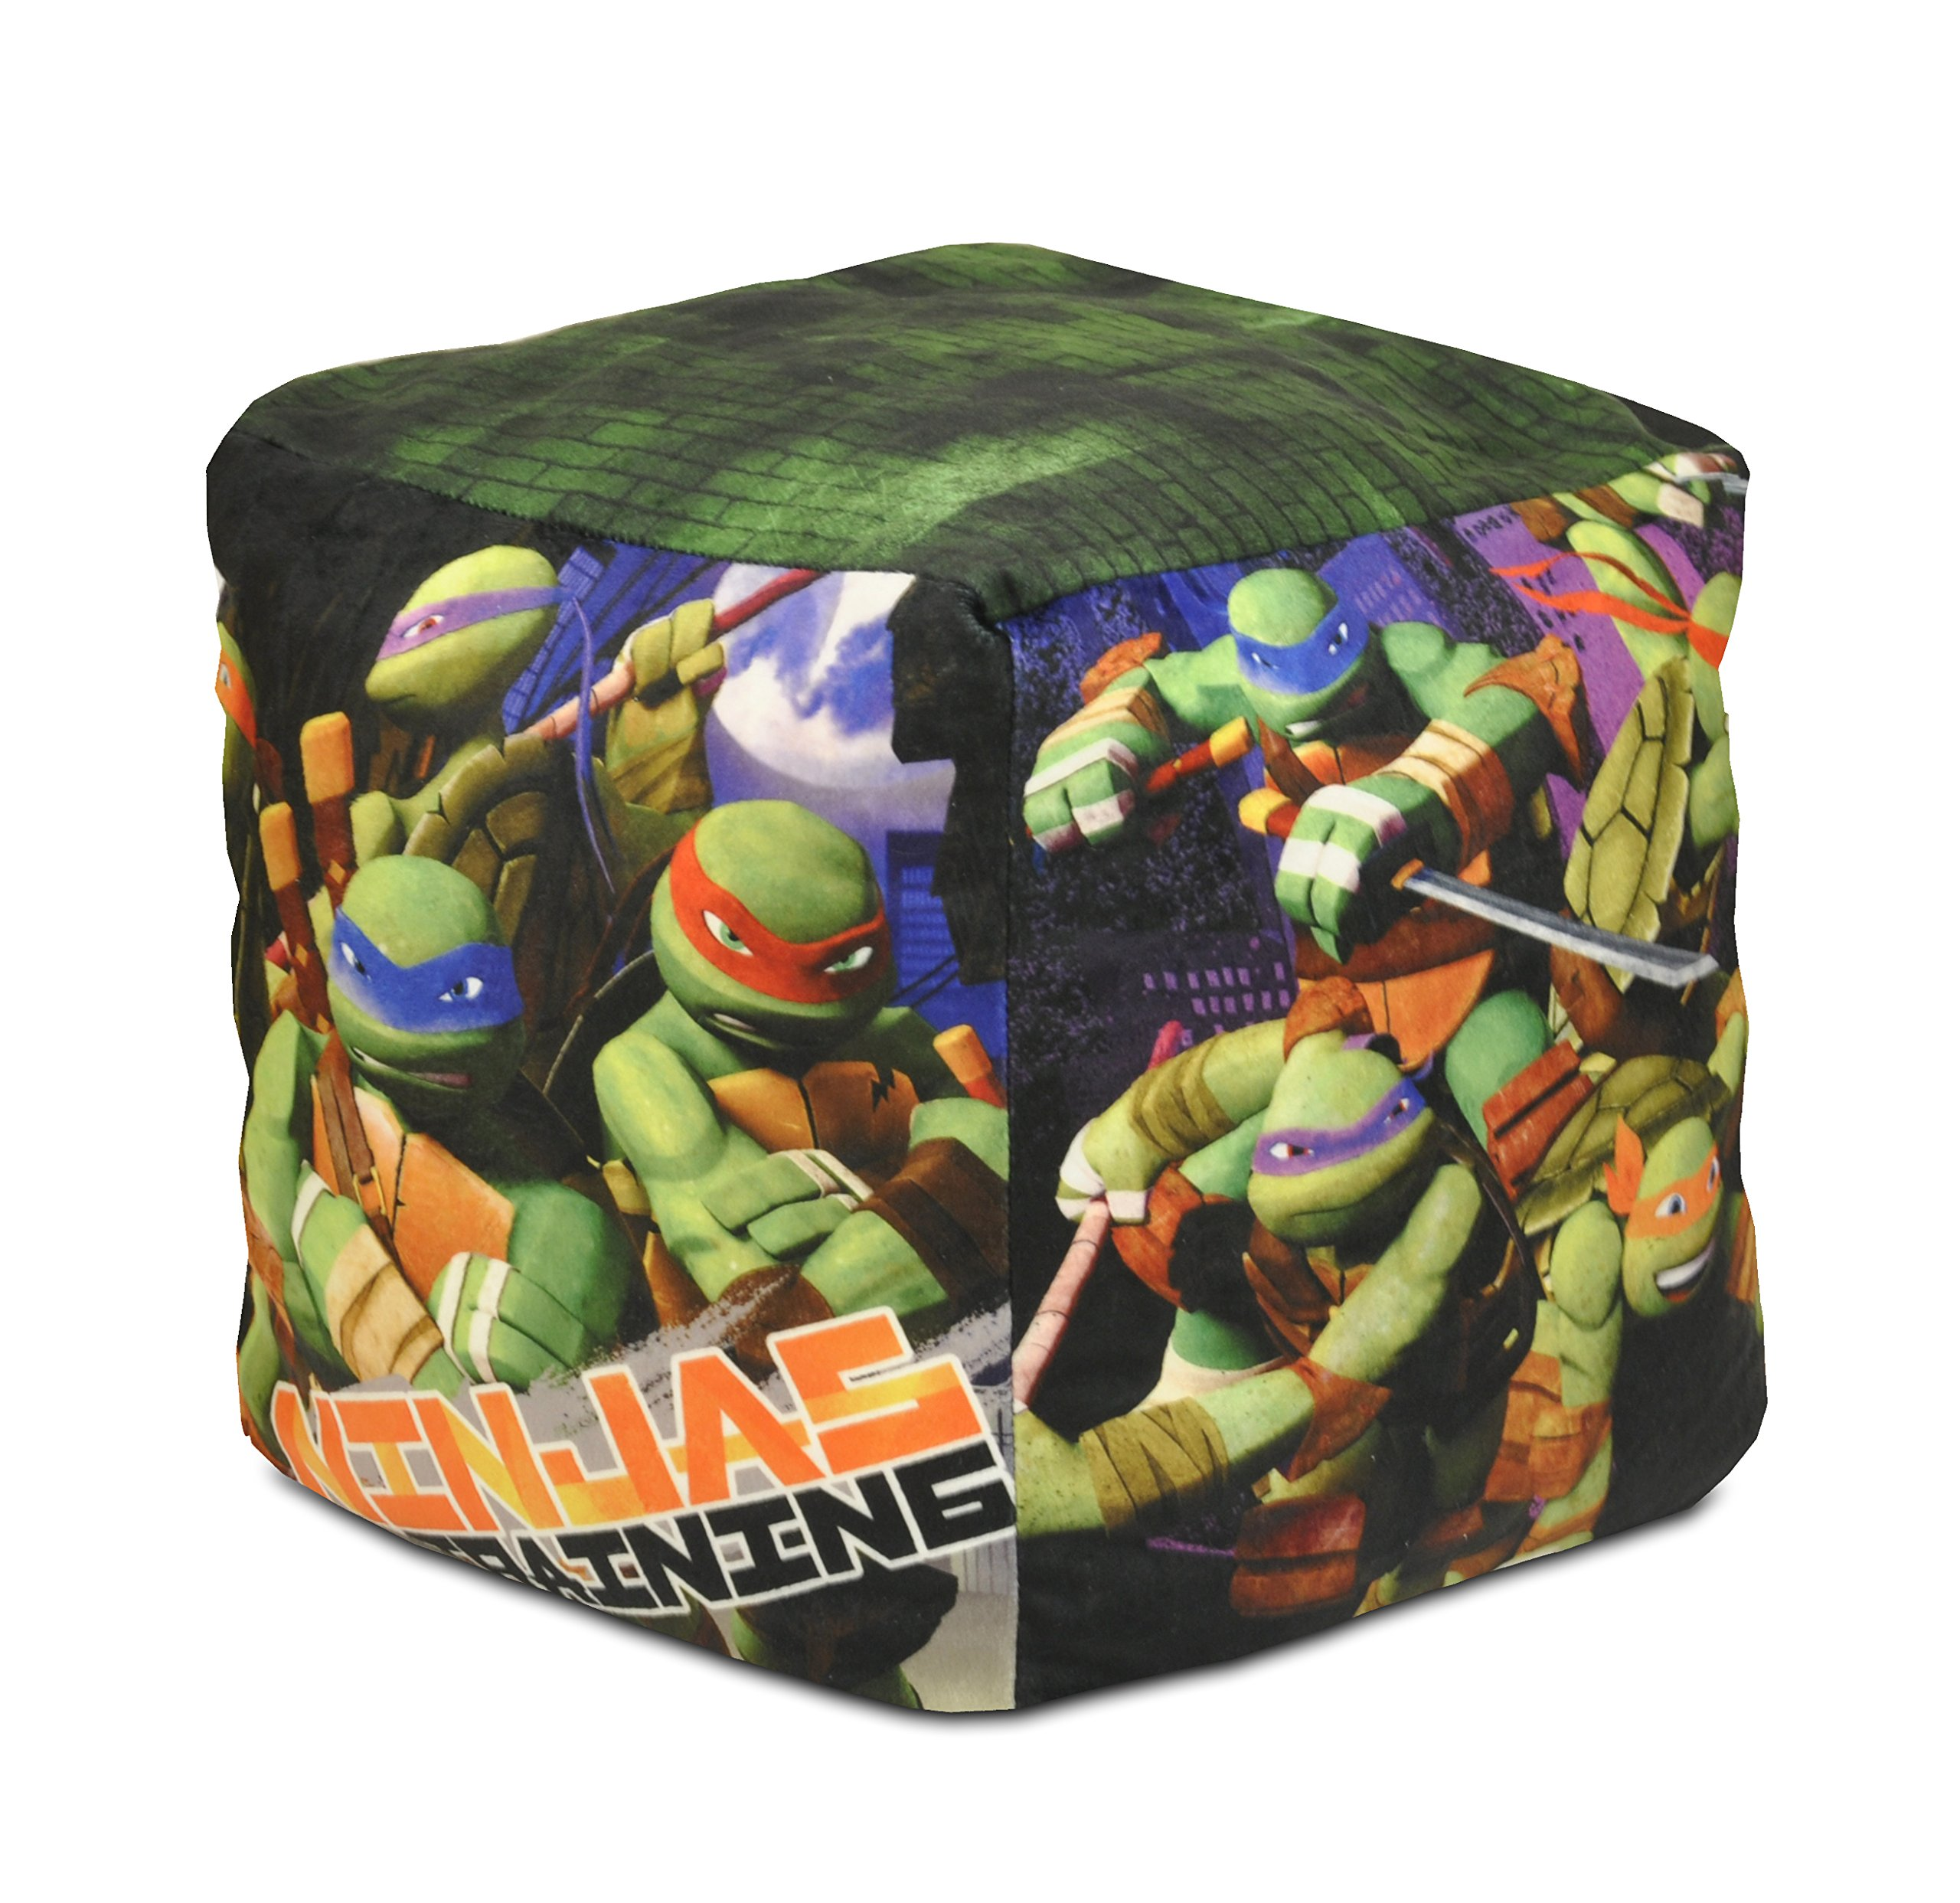 Nickelodeon Teenage Mutant Ninja Turtles Square Pouf